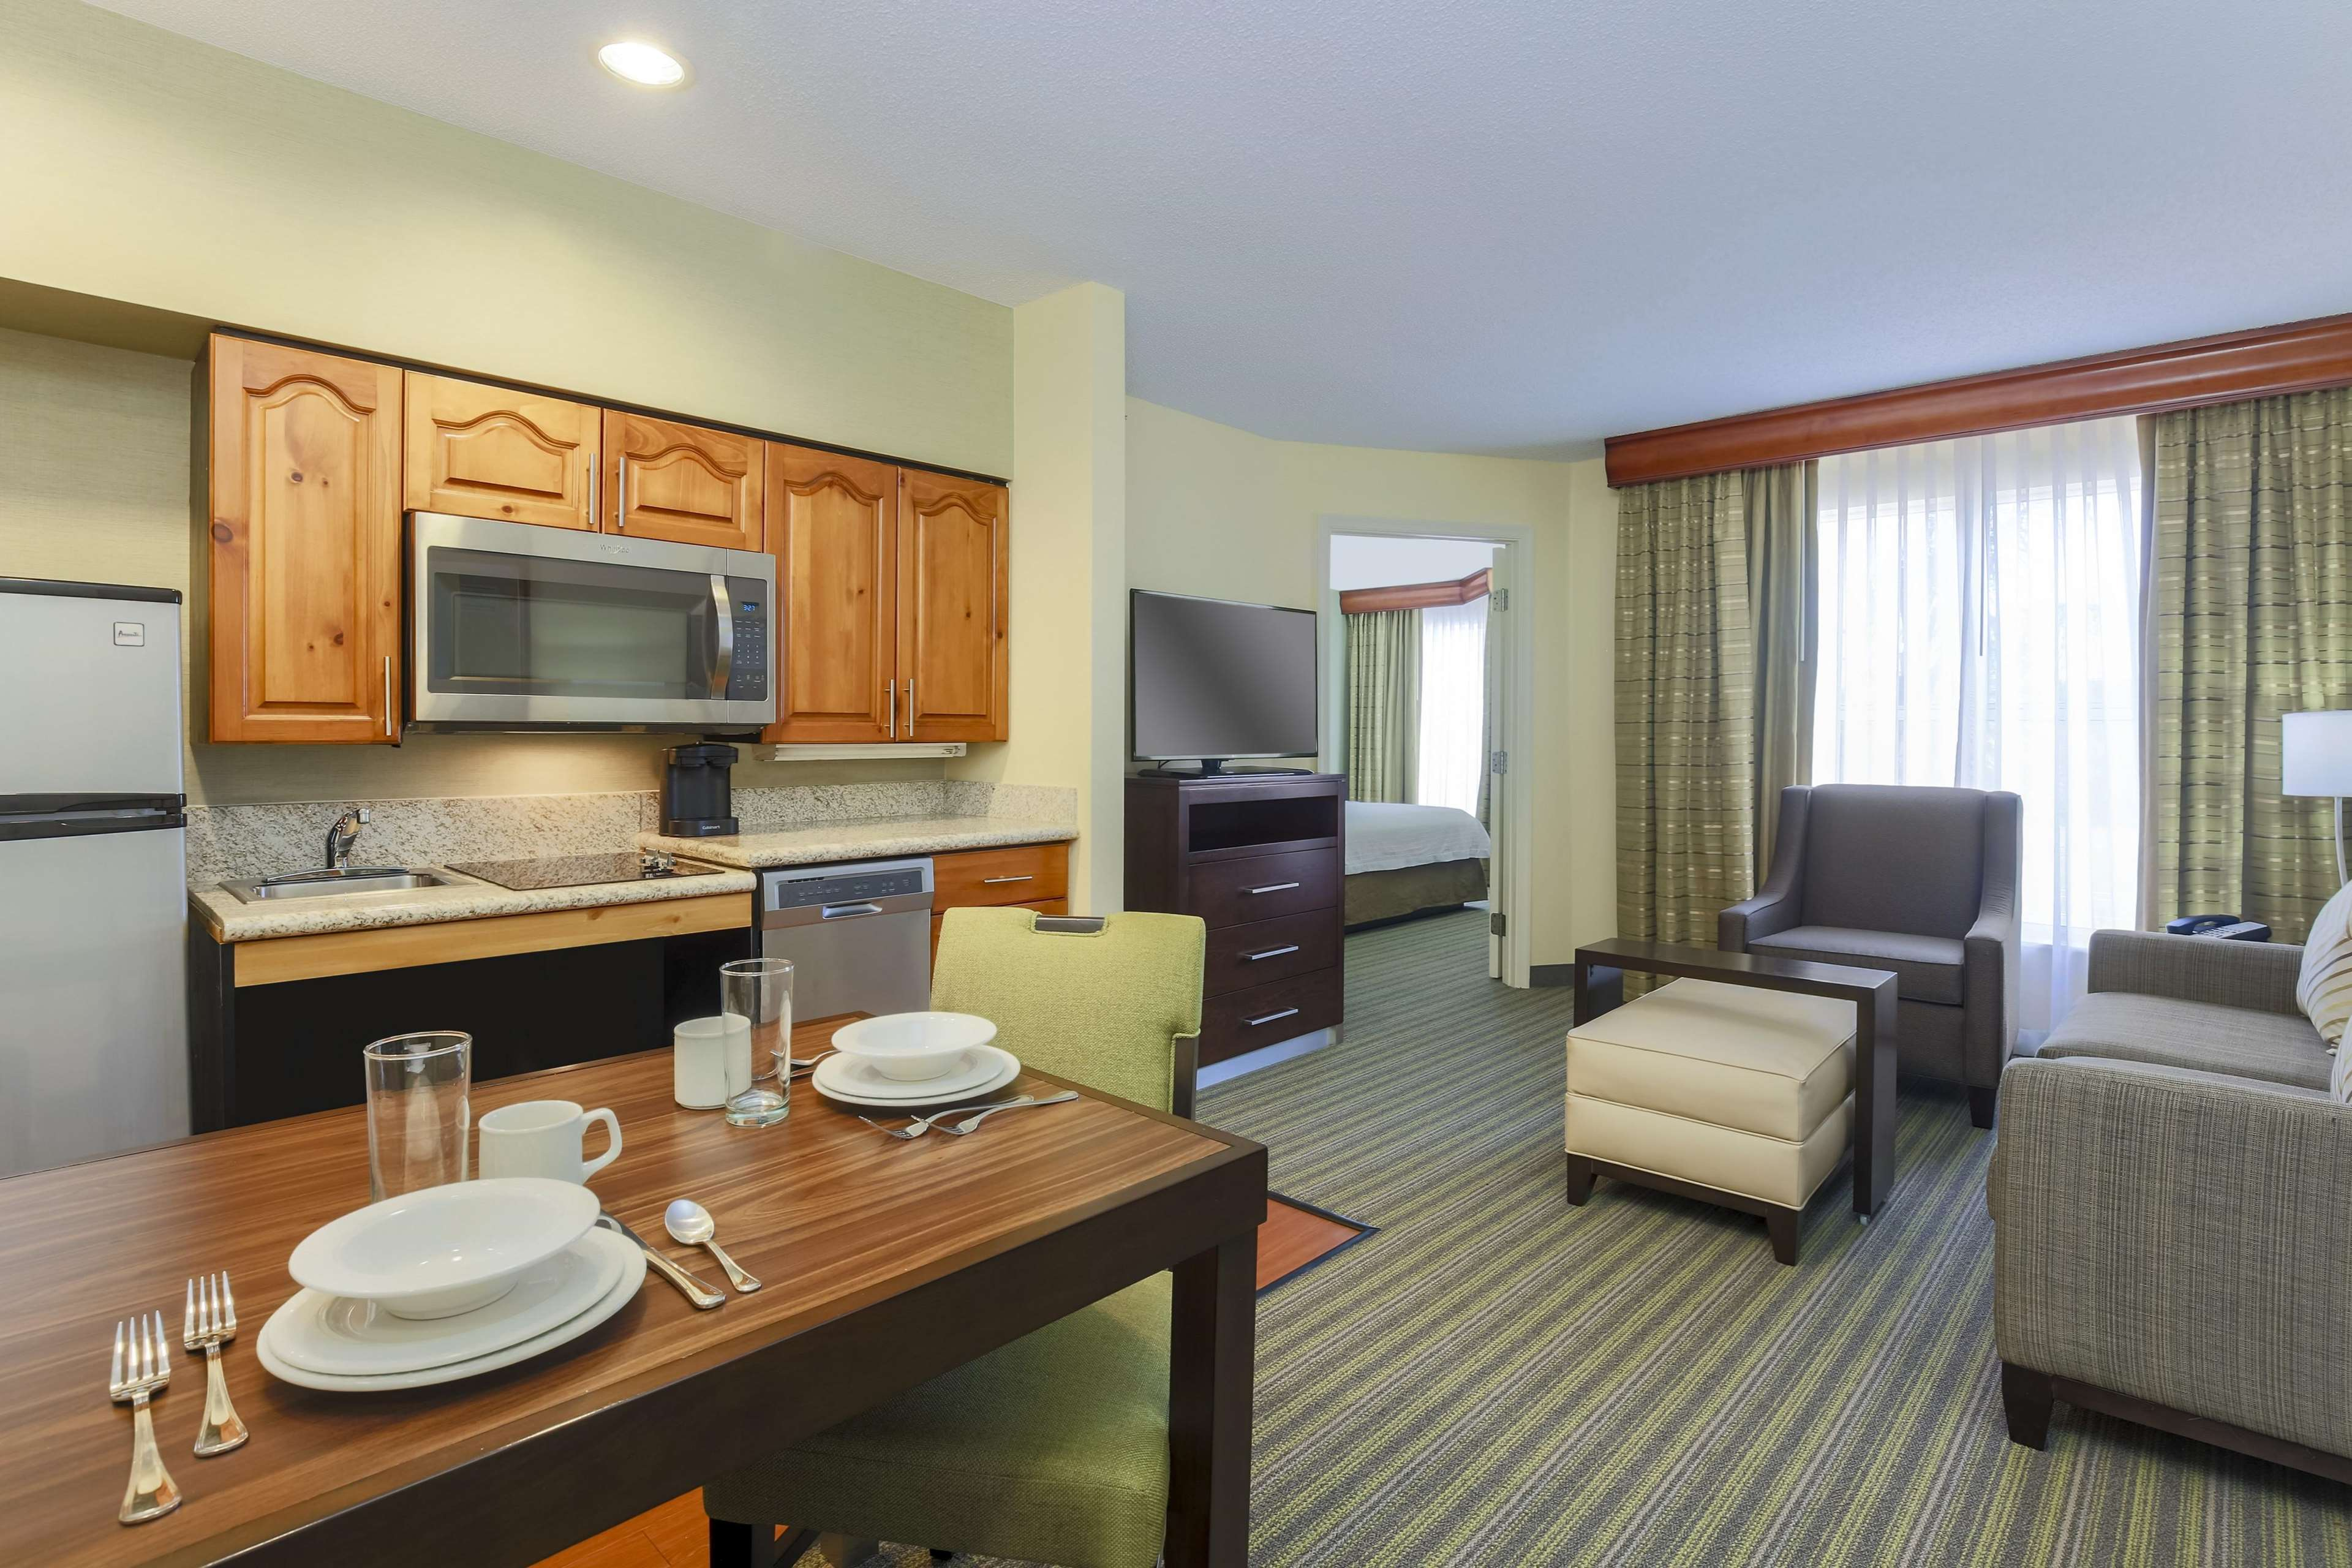 Homewood Suites by Hilton St. Petersburg Clearwater image 33